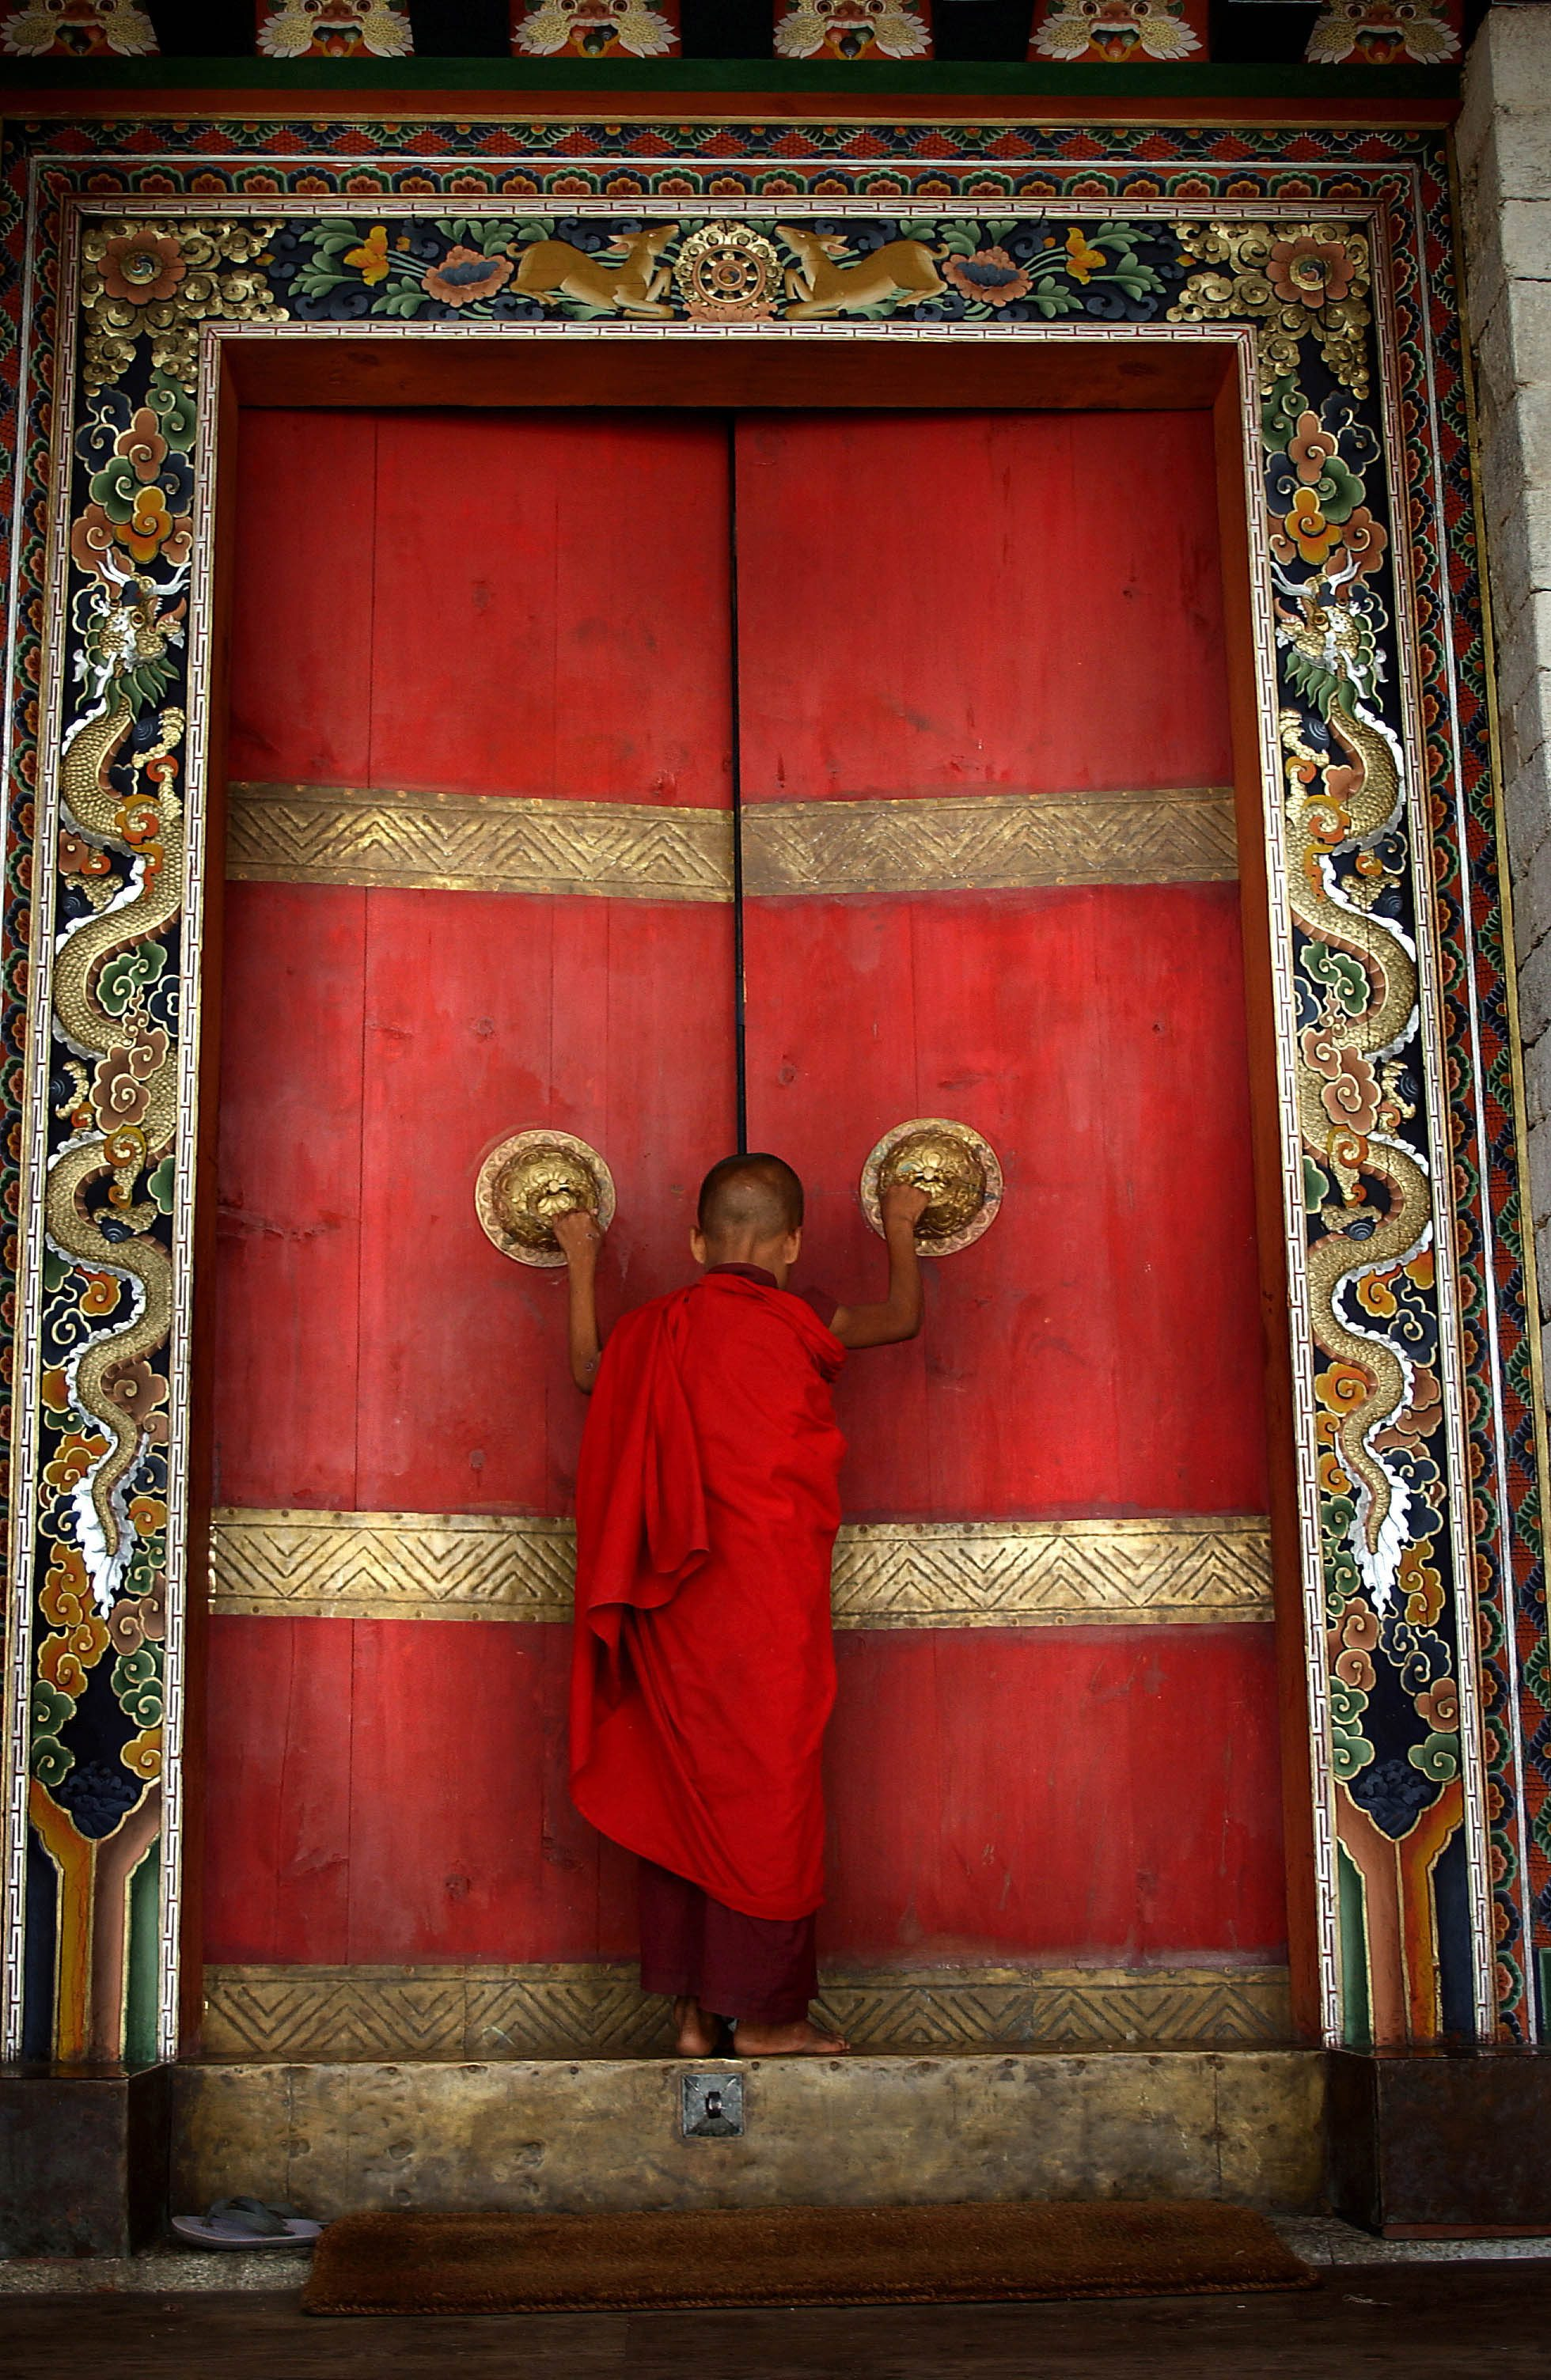 "BHUTAN:THE LAST SHANGRI LA 2: A Buddhist monk enters the formidable doors of Trongsa Dzong, the Ancestral home of BhutanÕs monarchy. The Himalayan kingdom of Bhutan has sat in isolation for thousands of years and only recently has been thrust into the glare of modern times after centuries of solitude. Bhutan is a tiny, remote, and impoverished country wedged precariously between two powerful neighbors, India and China. Violent storms coming off the Himalaya gave the country its name, meaning ""Land of the Thunder Dragon."" This conservative Buddhist kingdom high in the Himalaya had no paved roads until the 1960s, was off-limits to foreigners until 1974, and launched television only in 1999 ."